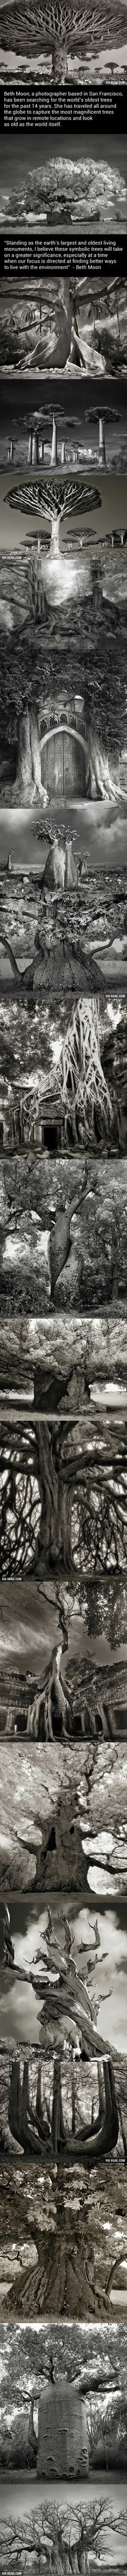 These ancient trees are gorgeous. Photos by Beth Moon